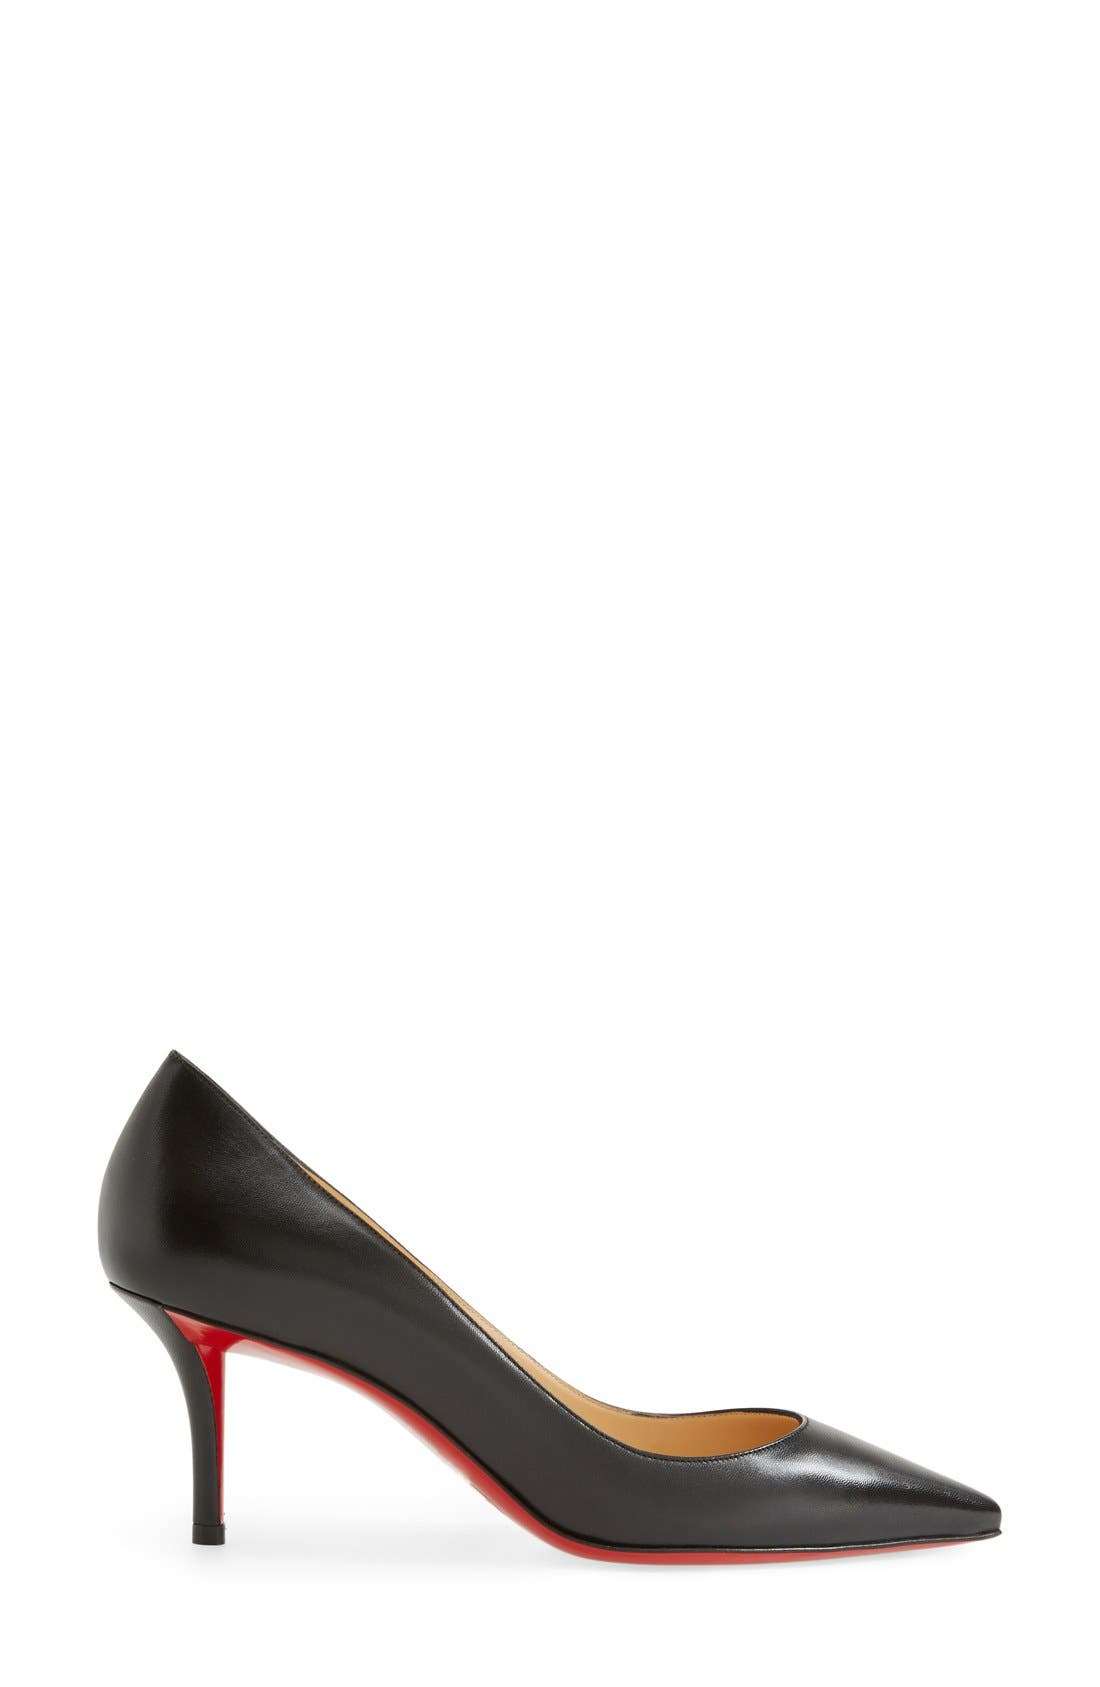 'Apostrophy' Pointy Toe Pump,                             Alternate thumbnail 4, color,                             001